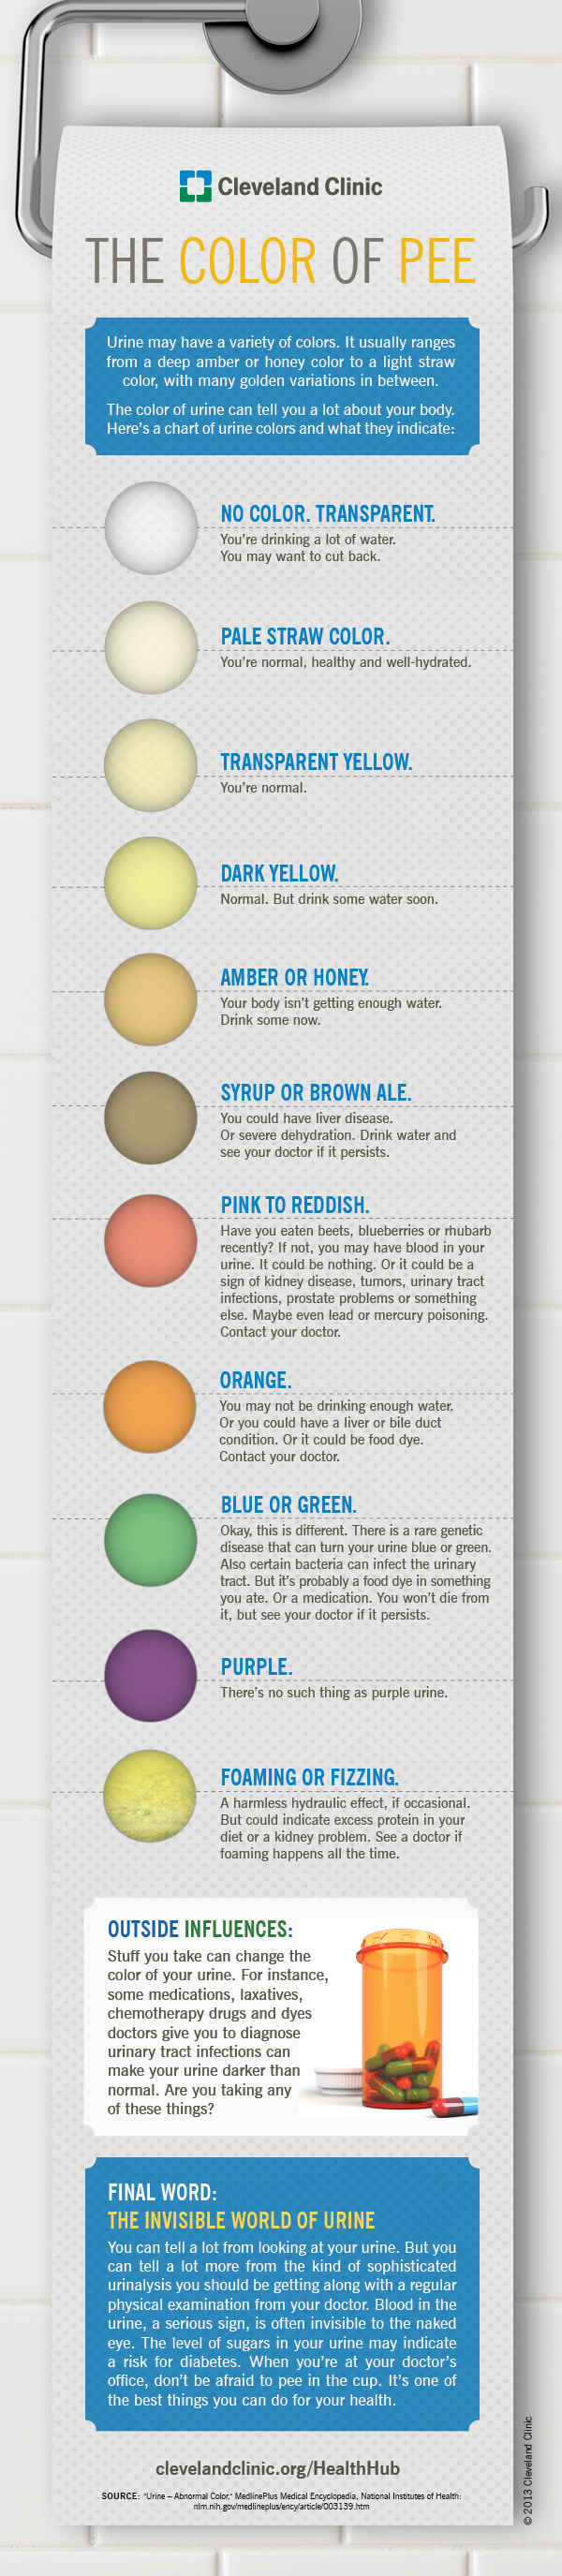 13-HHB-1407-The-Color-of-Pee-Infographic_FNL-finalnm